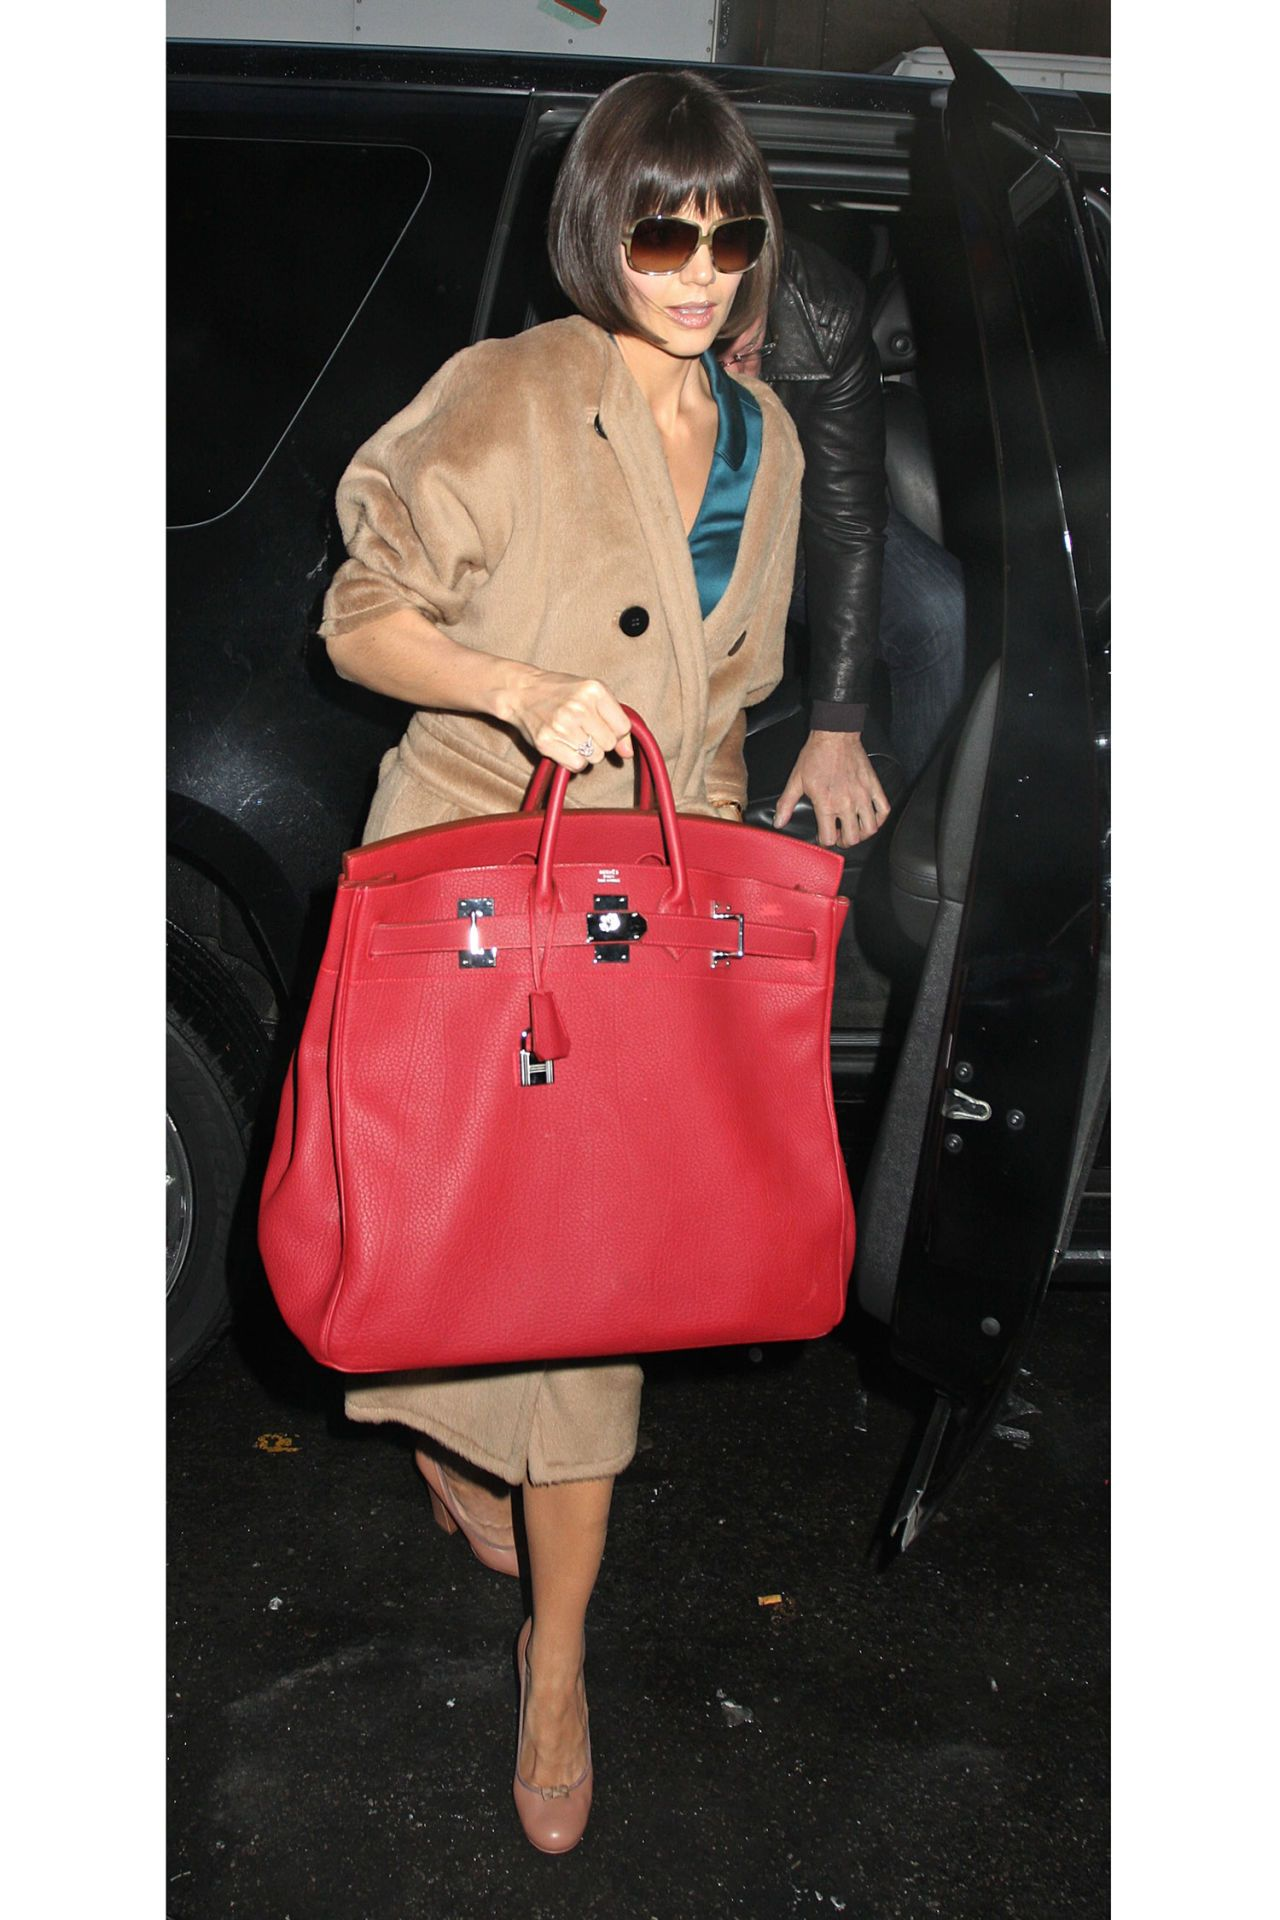 546b2c43a3  theLIST  Hermes Birkin Bags - Celebrities with Birkin Bags